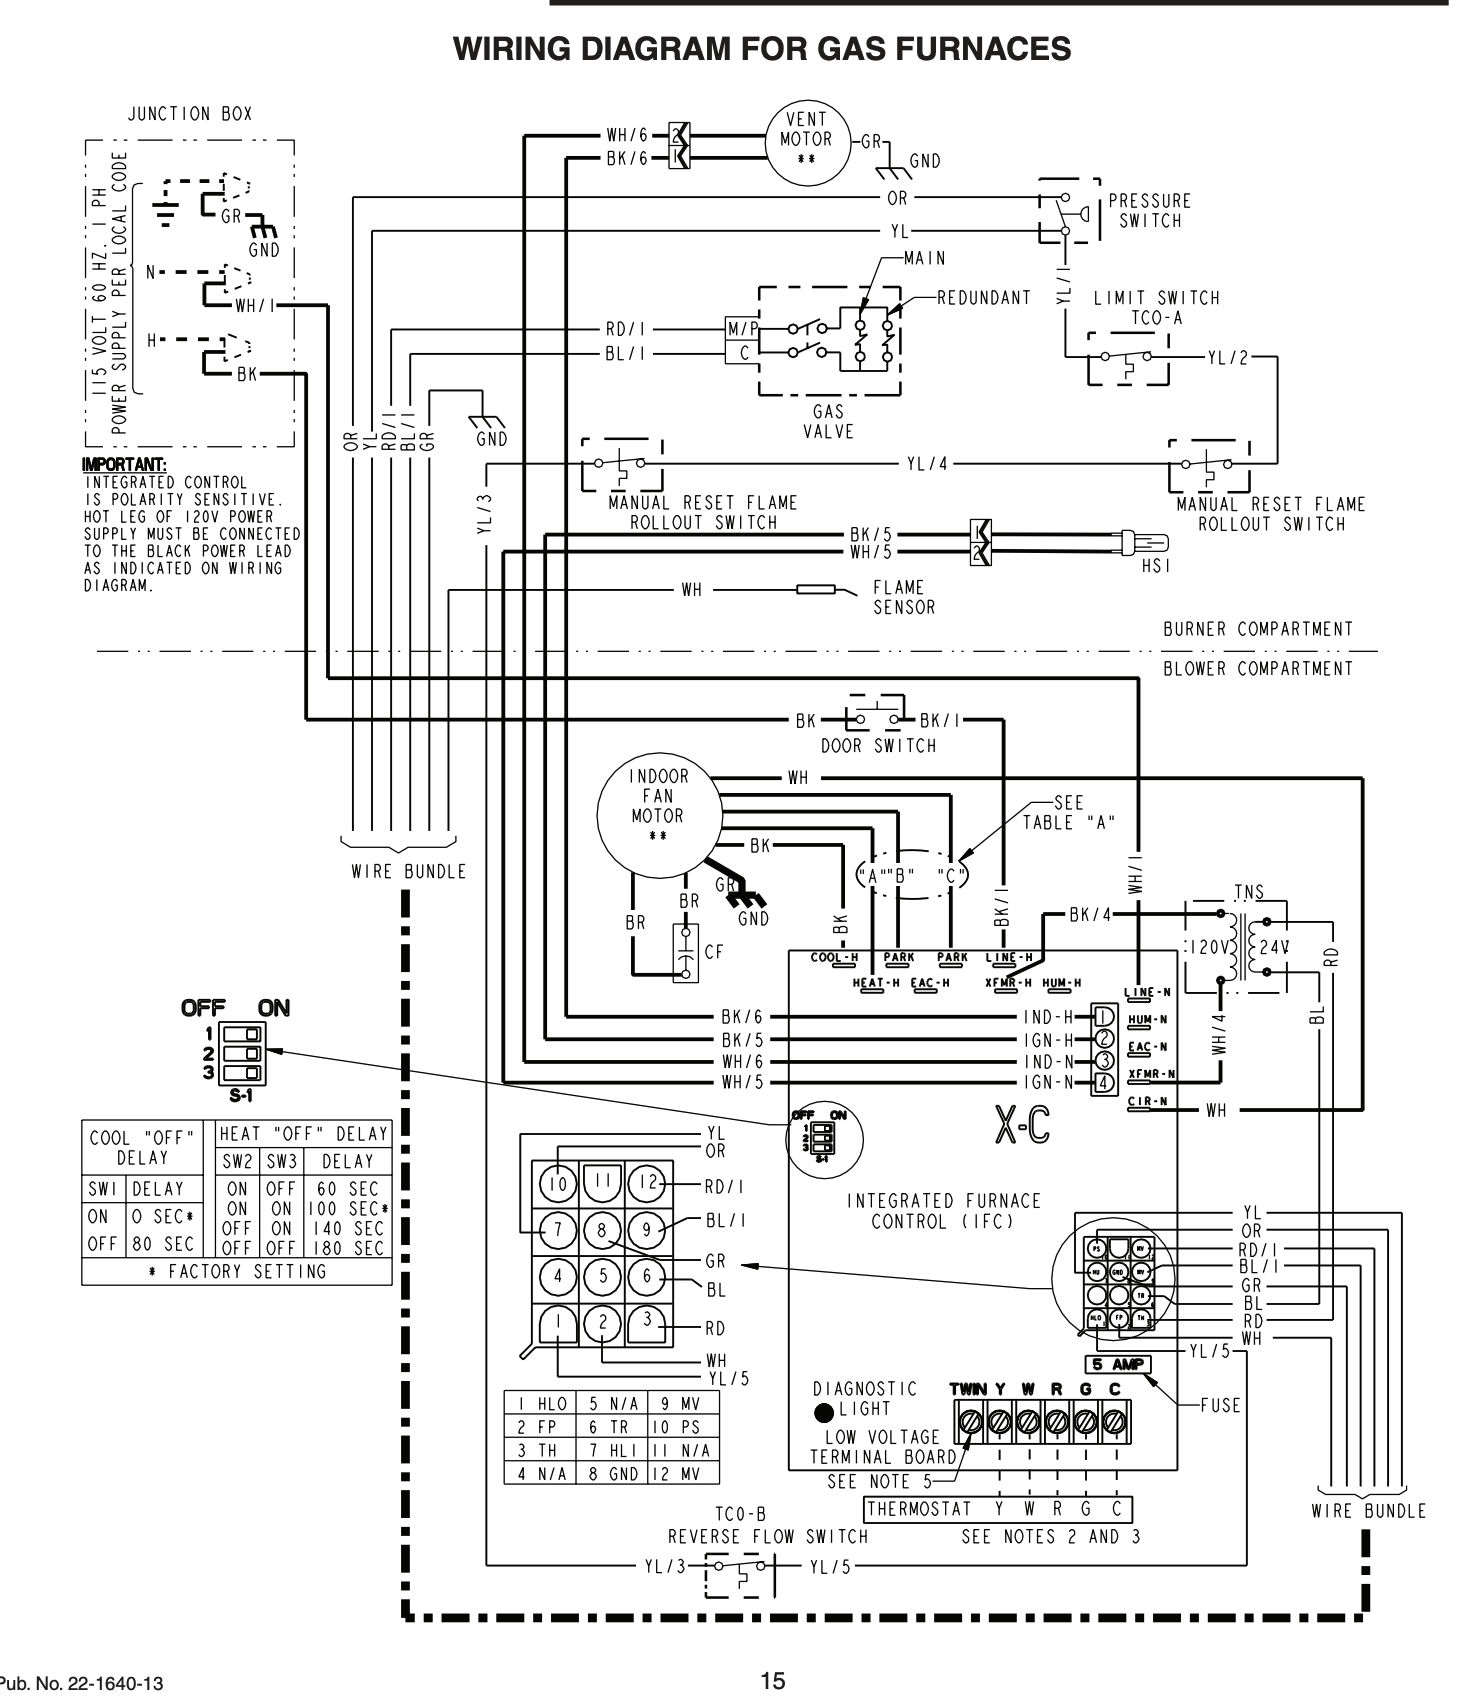 central heating systems on international heat pump wiring diagram